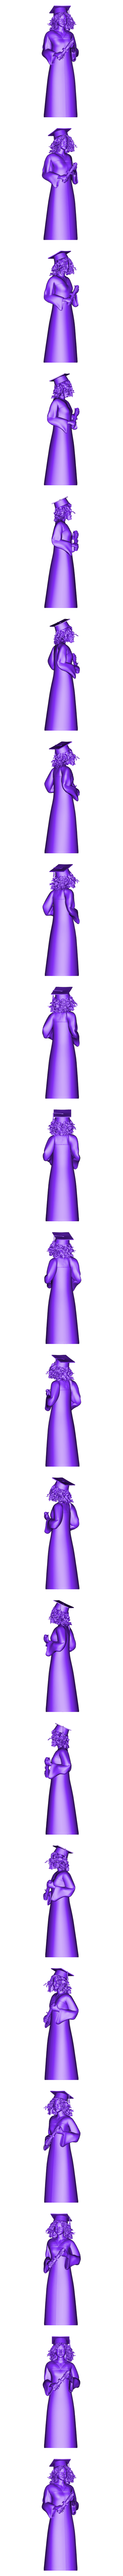 girls ready.obj Download OBJ file graduate • 3D print design, RolandH